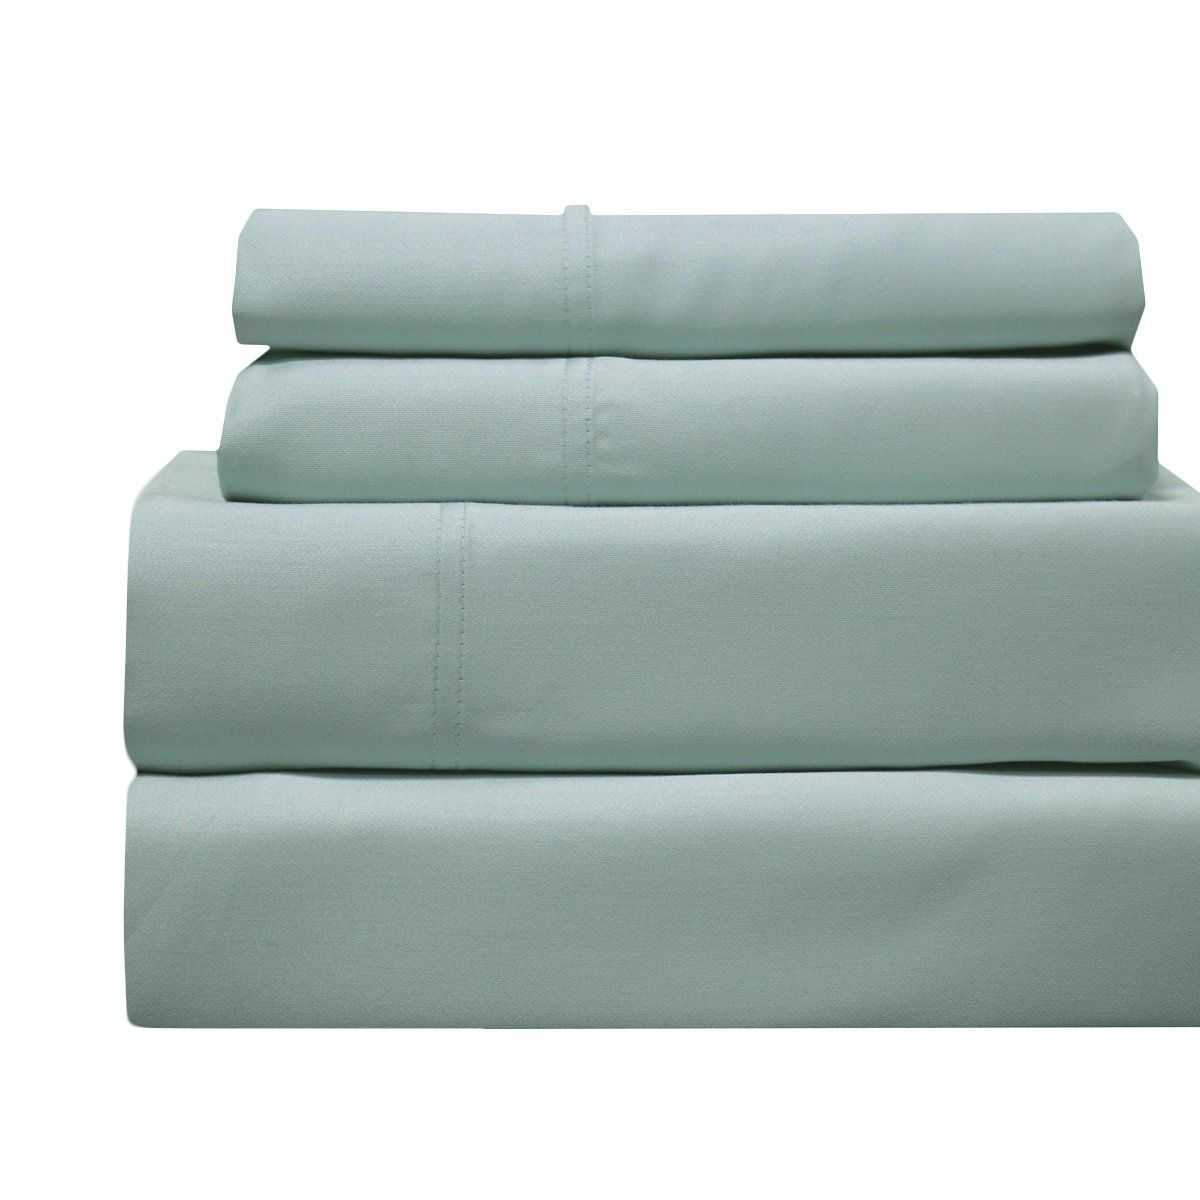 CinchFit Quahog Bay Bedding Cinches to Fit and Doesn't Pop